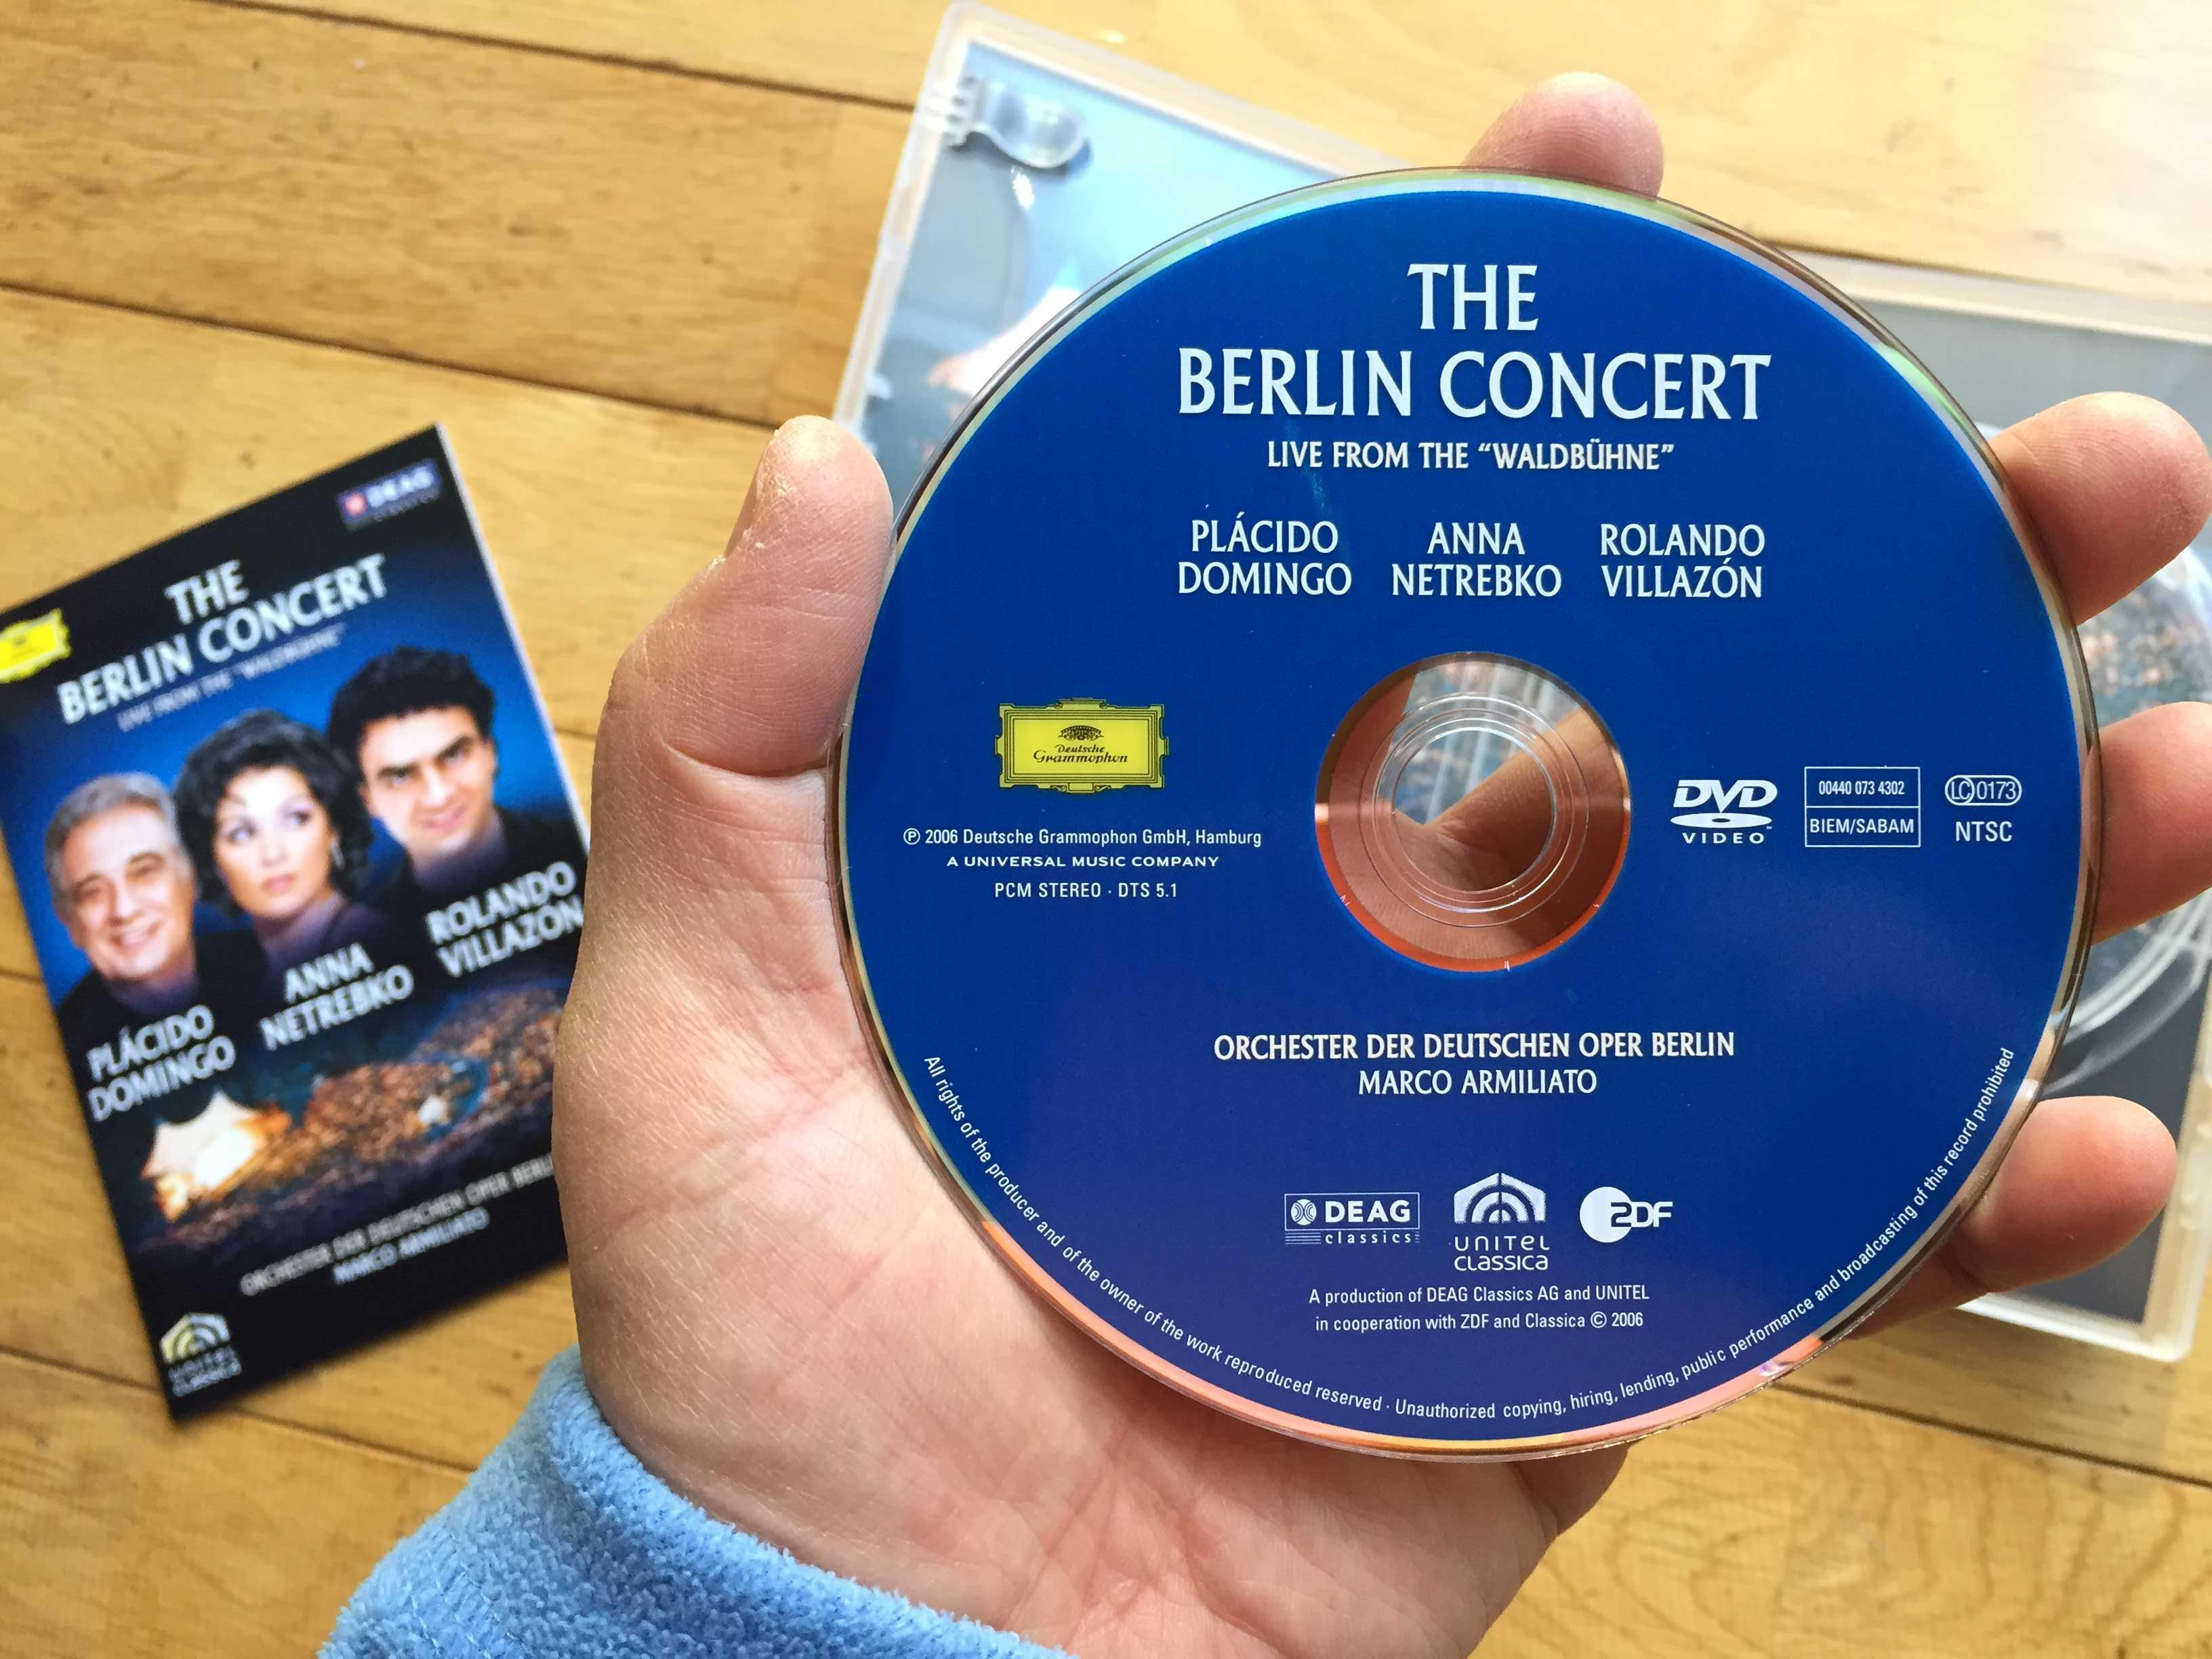 THE BERLIN CONCERT: LIVE FROM THE